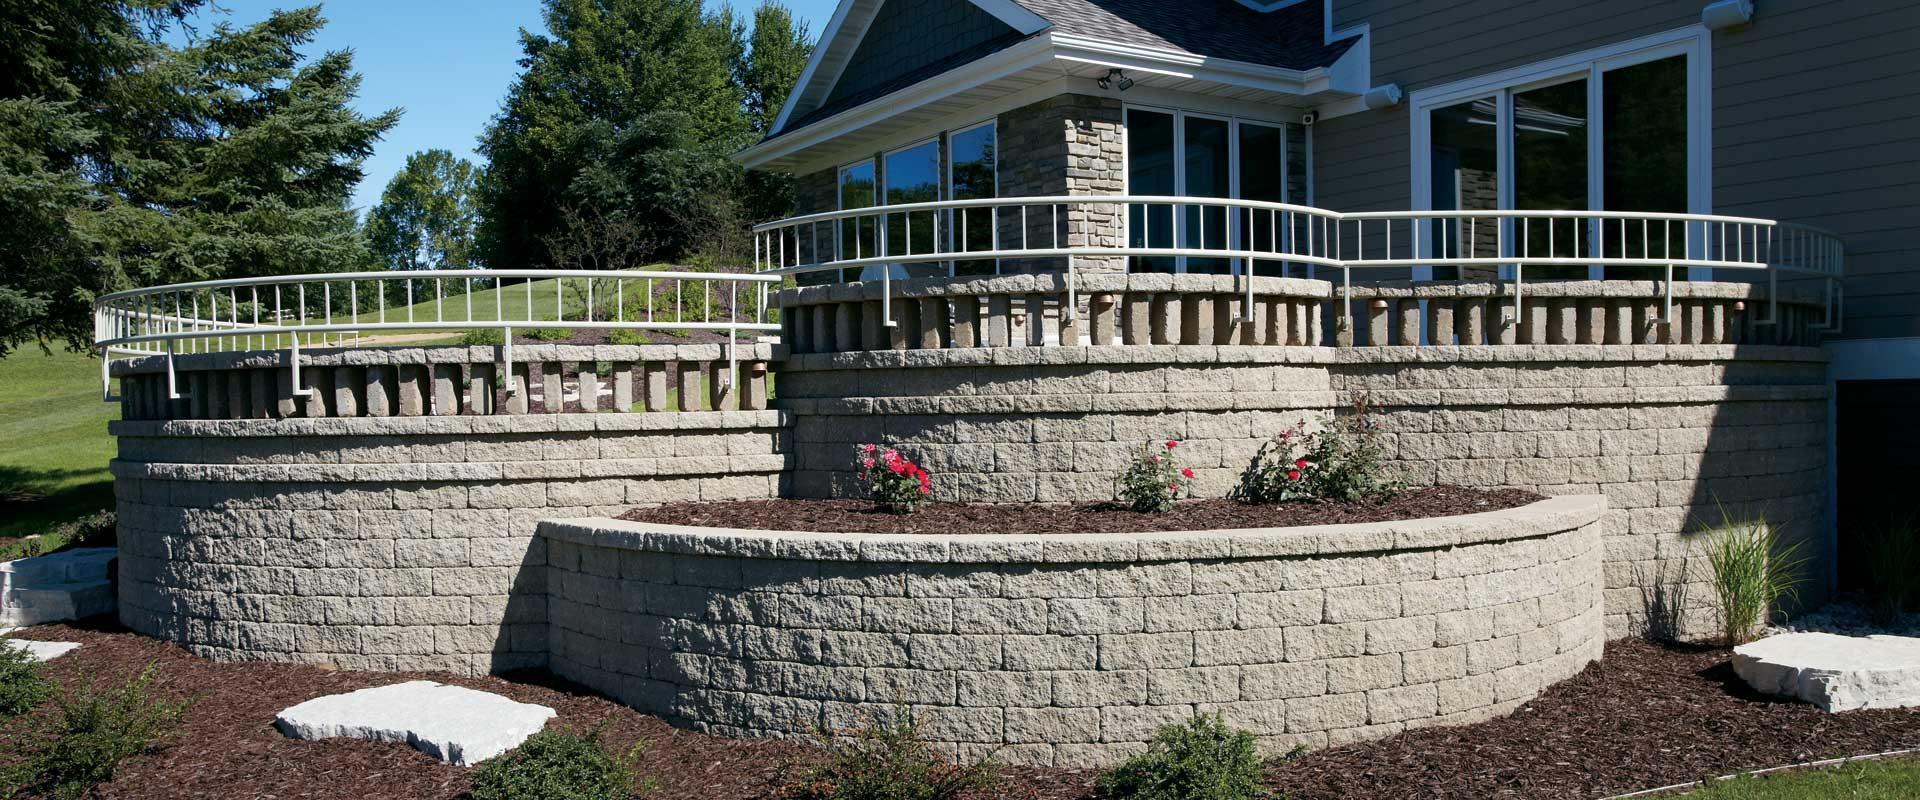 retaining walls - Block Retaining Wall Design Manual